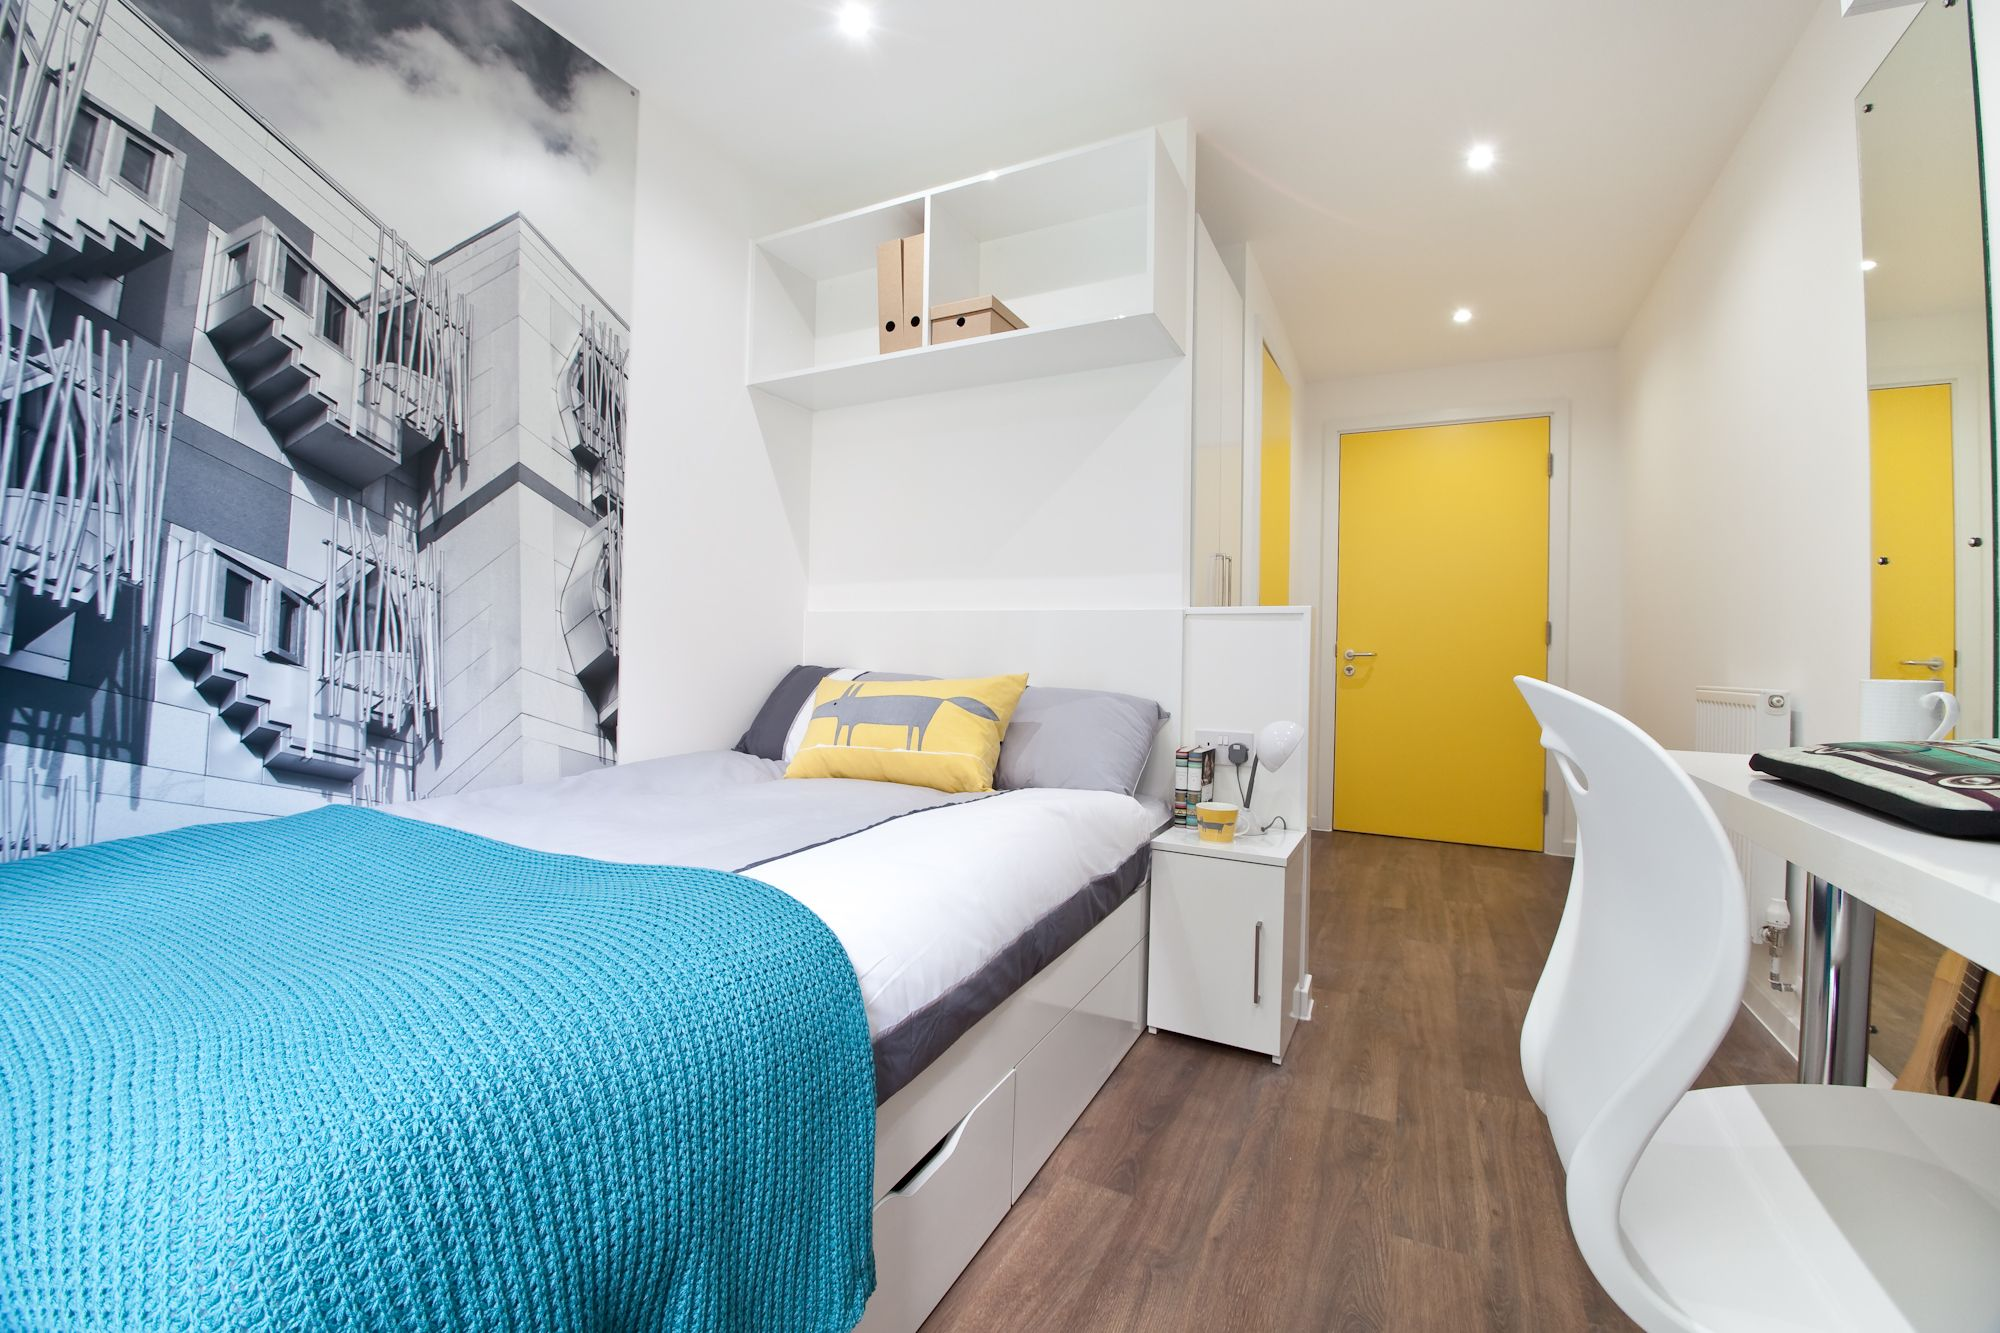 2 bed apartment en suite bedroom at edge apartments birmingham student accommodation www Bedroom furniture for college students